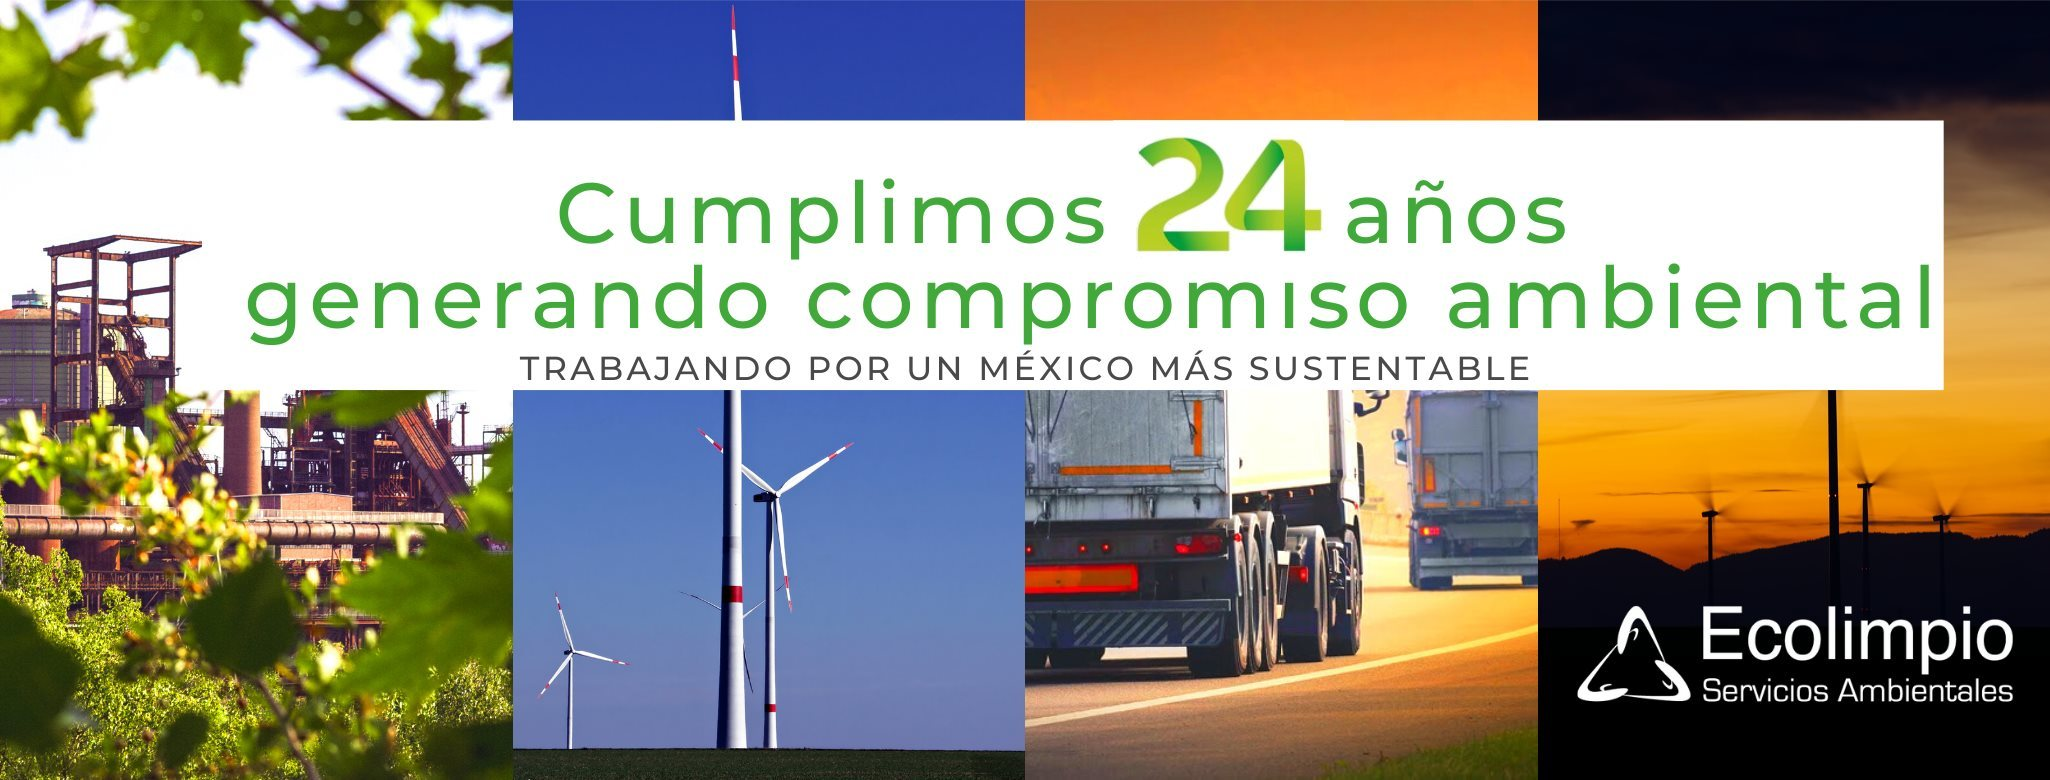 Ecolimpio working for a sustainable Mexico